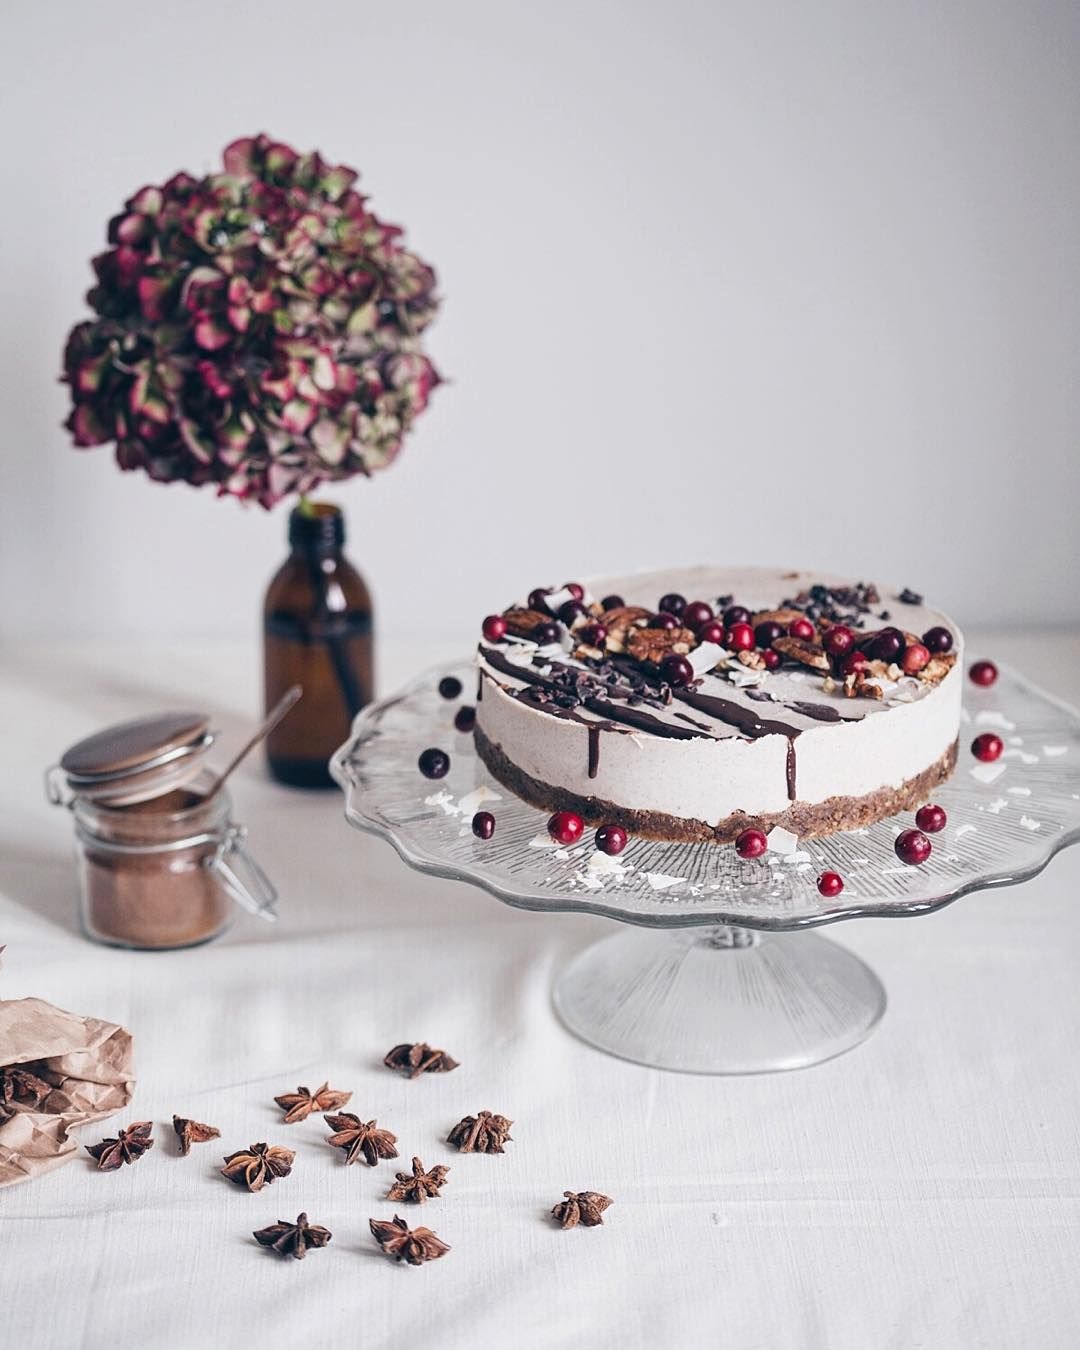 New recipe Raw Vegan Gingerbread Cake! Delicious and festive hellip